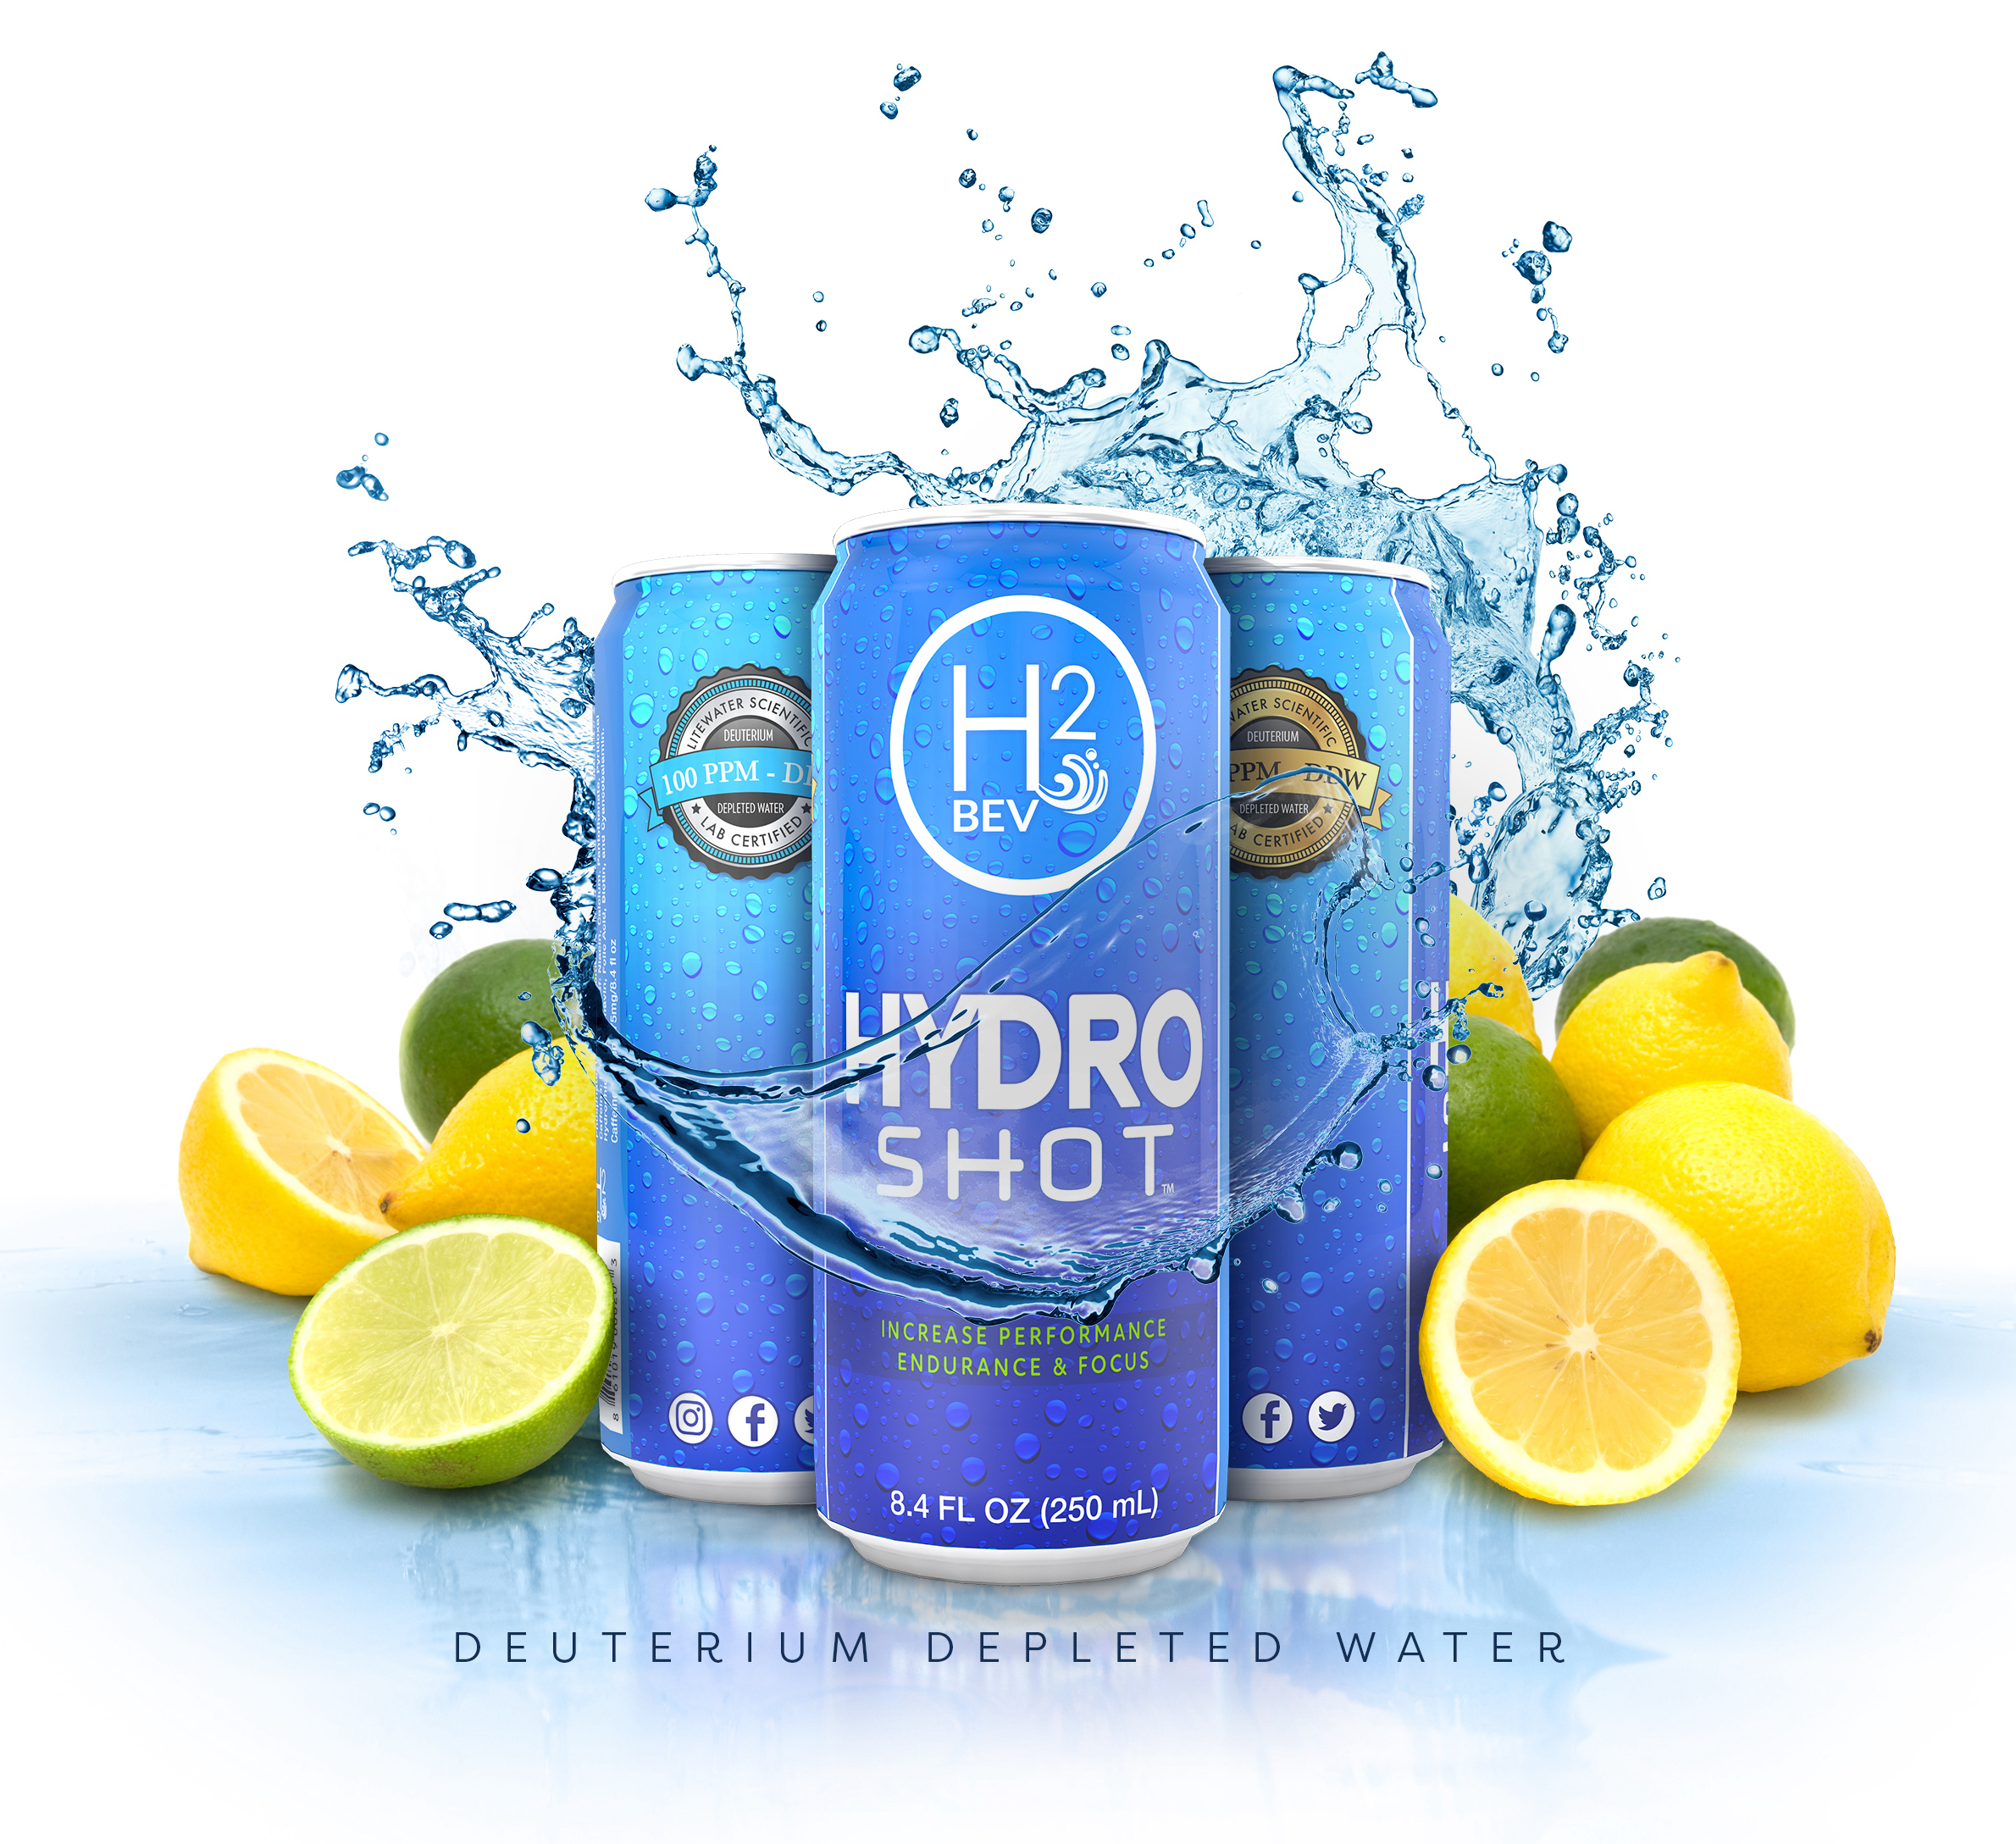 The World's First Hydrogen Infused Functional Energy Drink Made with 100 PPM Deuterium Depleted Water